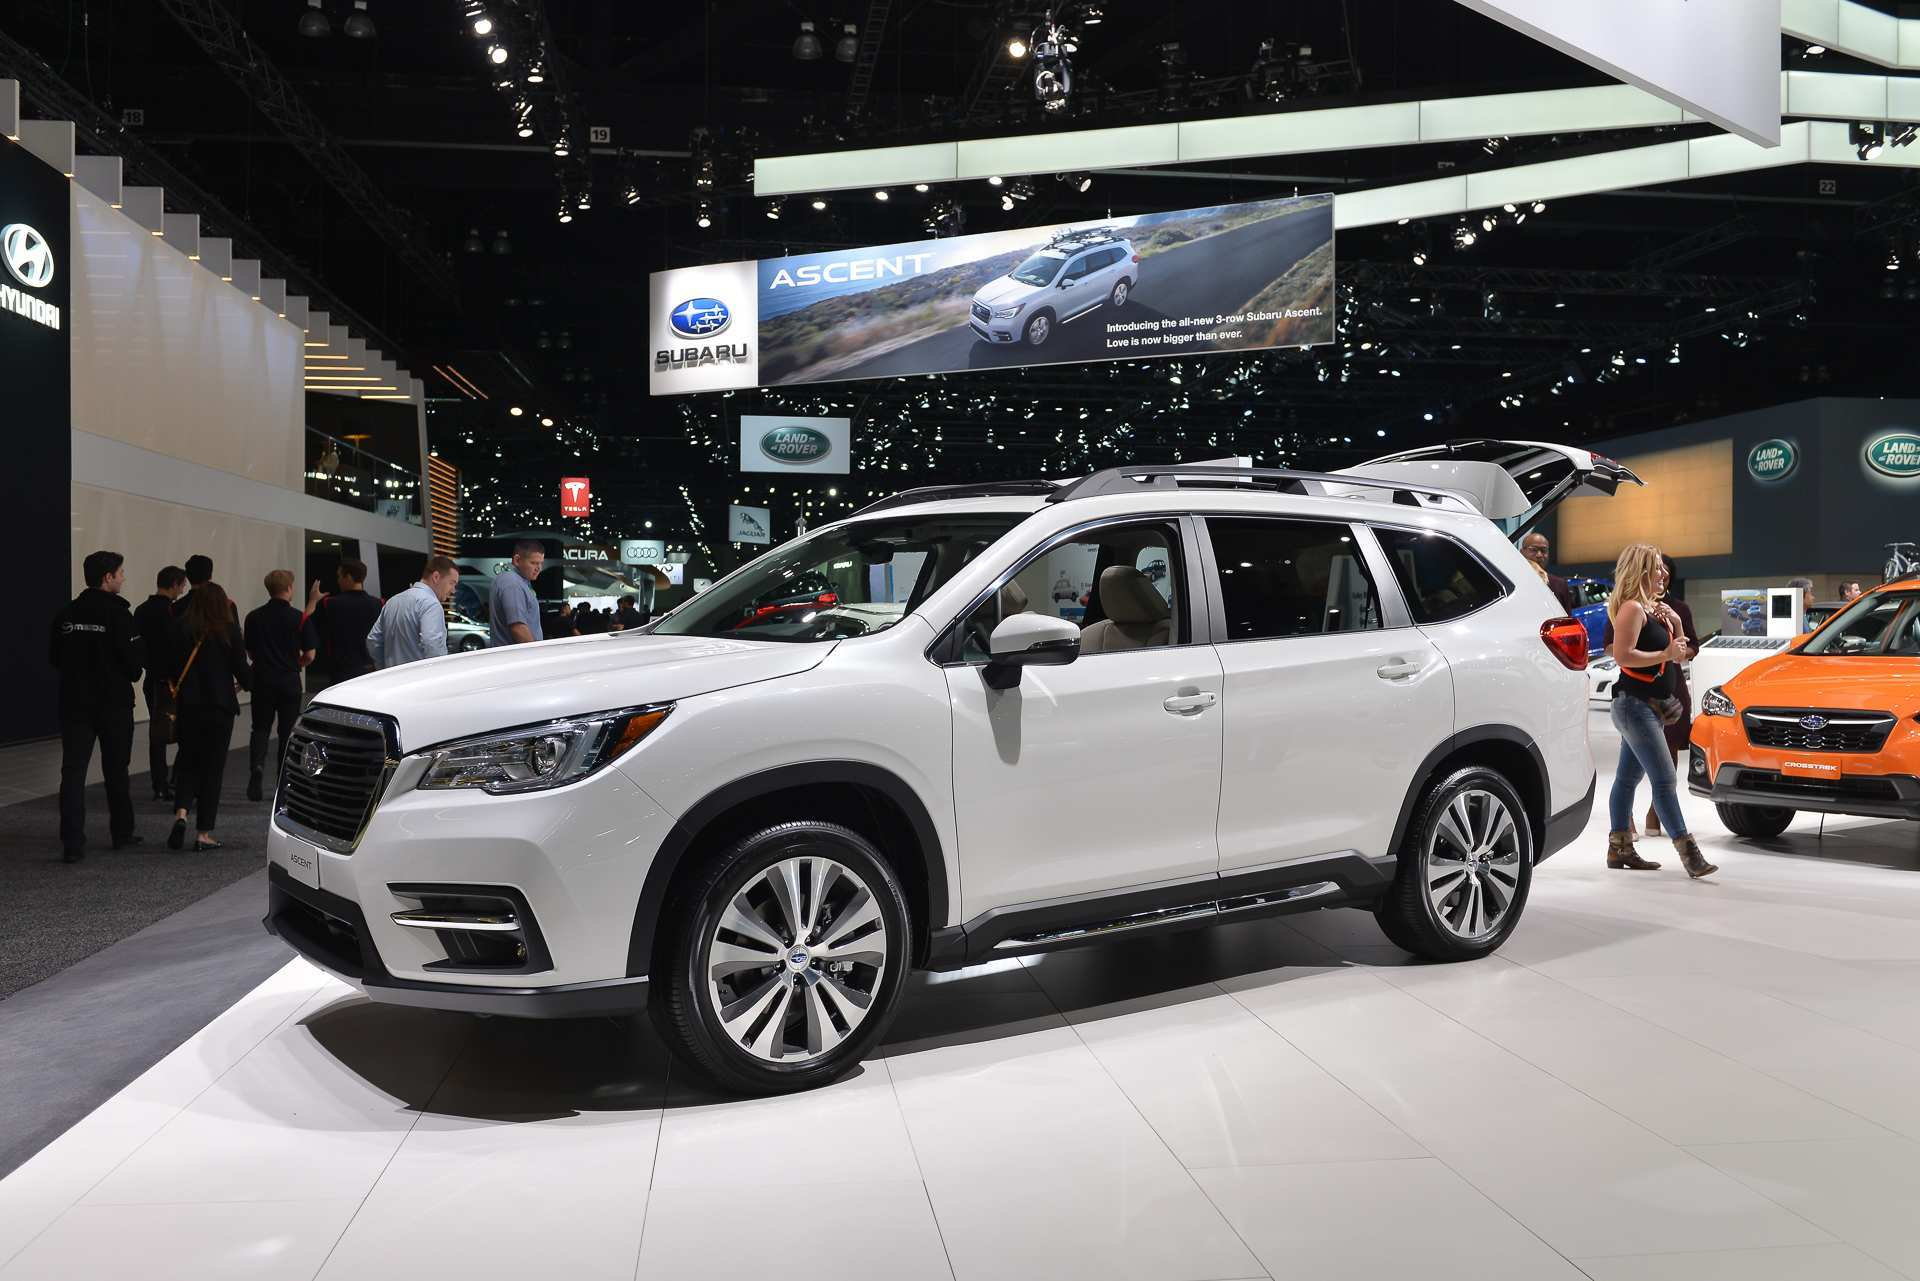 79 Best Review 2019 Subaru Ascent Price with 2019 Subaru Ascent